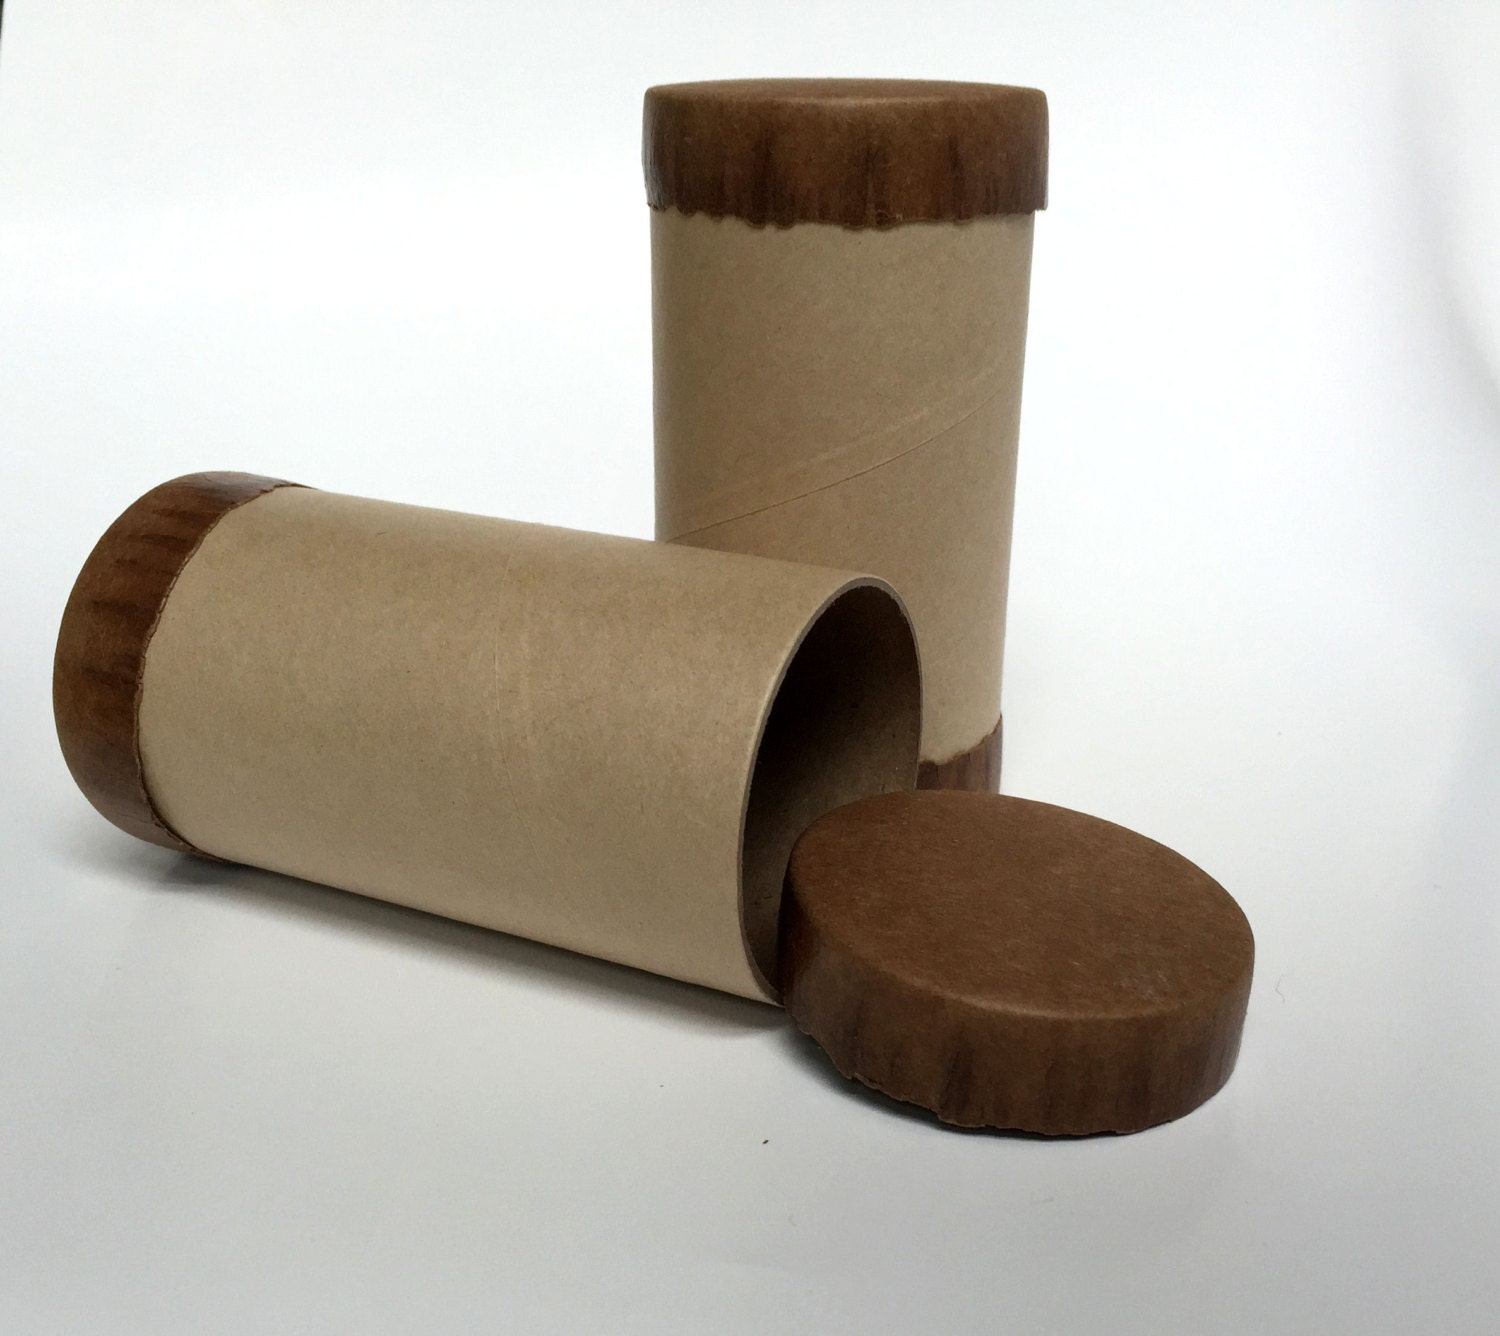 kraft paper tube container paper tubes gift box favor box